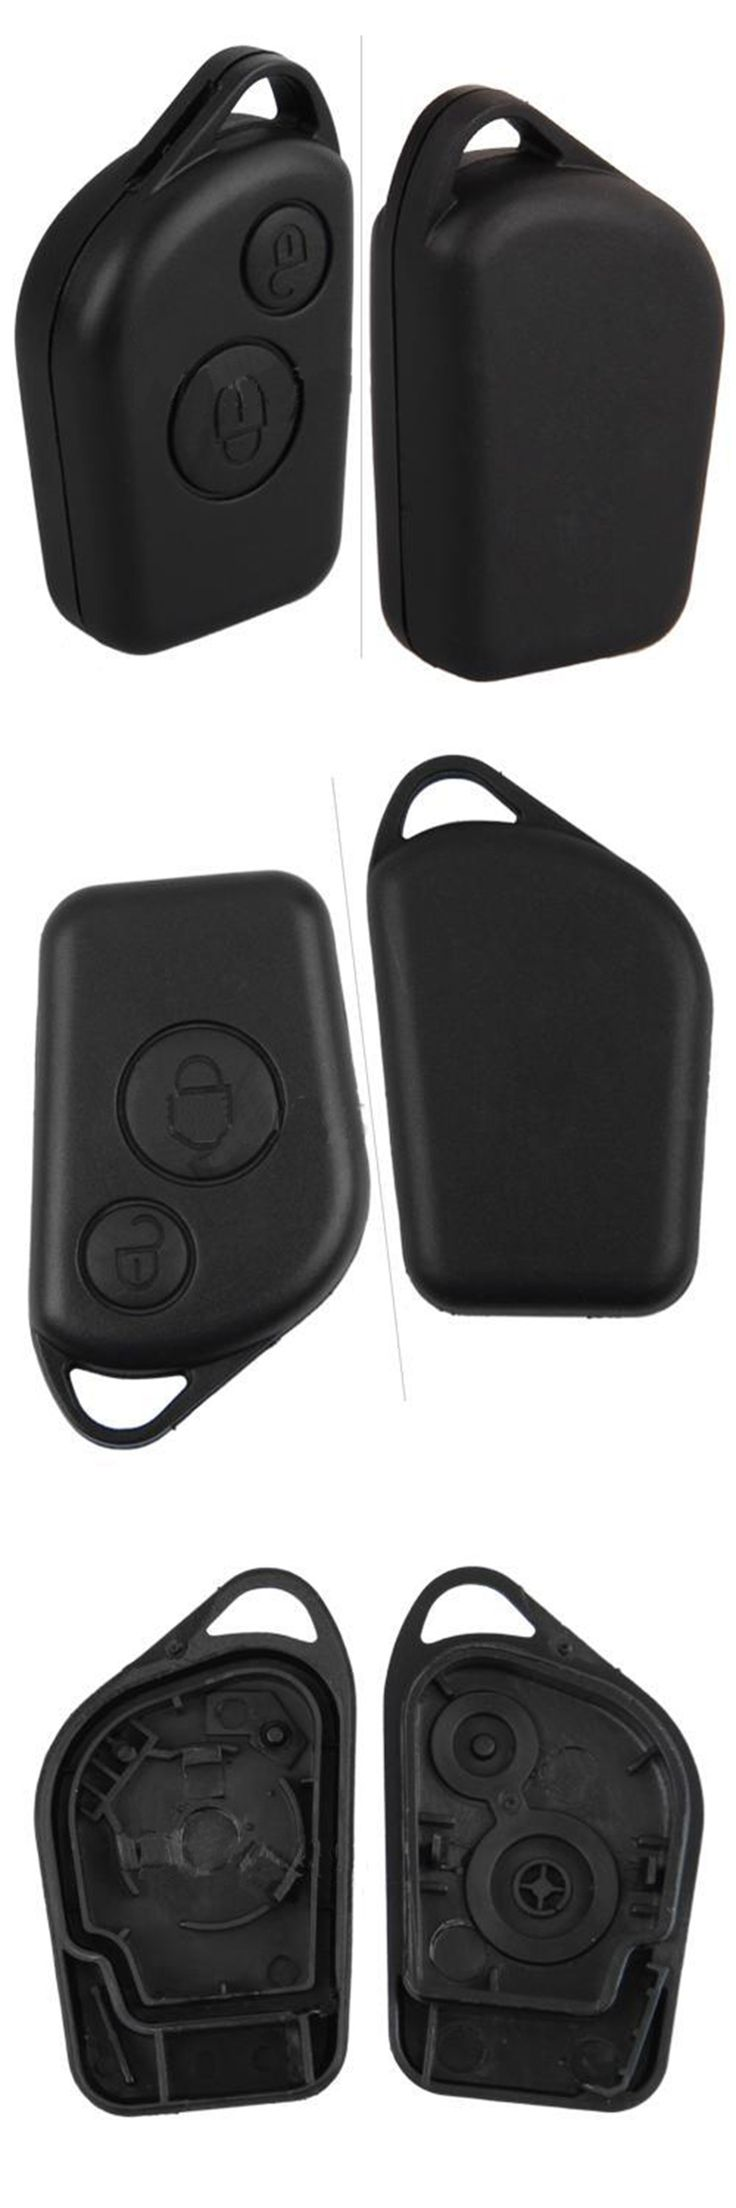 Dewtreetali 2017 new Replacement Remote Key Case Fob Shell For Citroen Xsara Picasso Berlingo free shipping